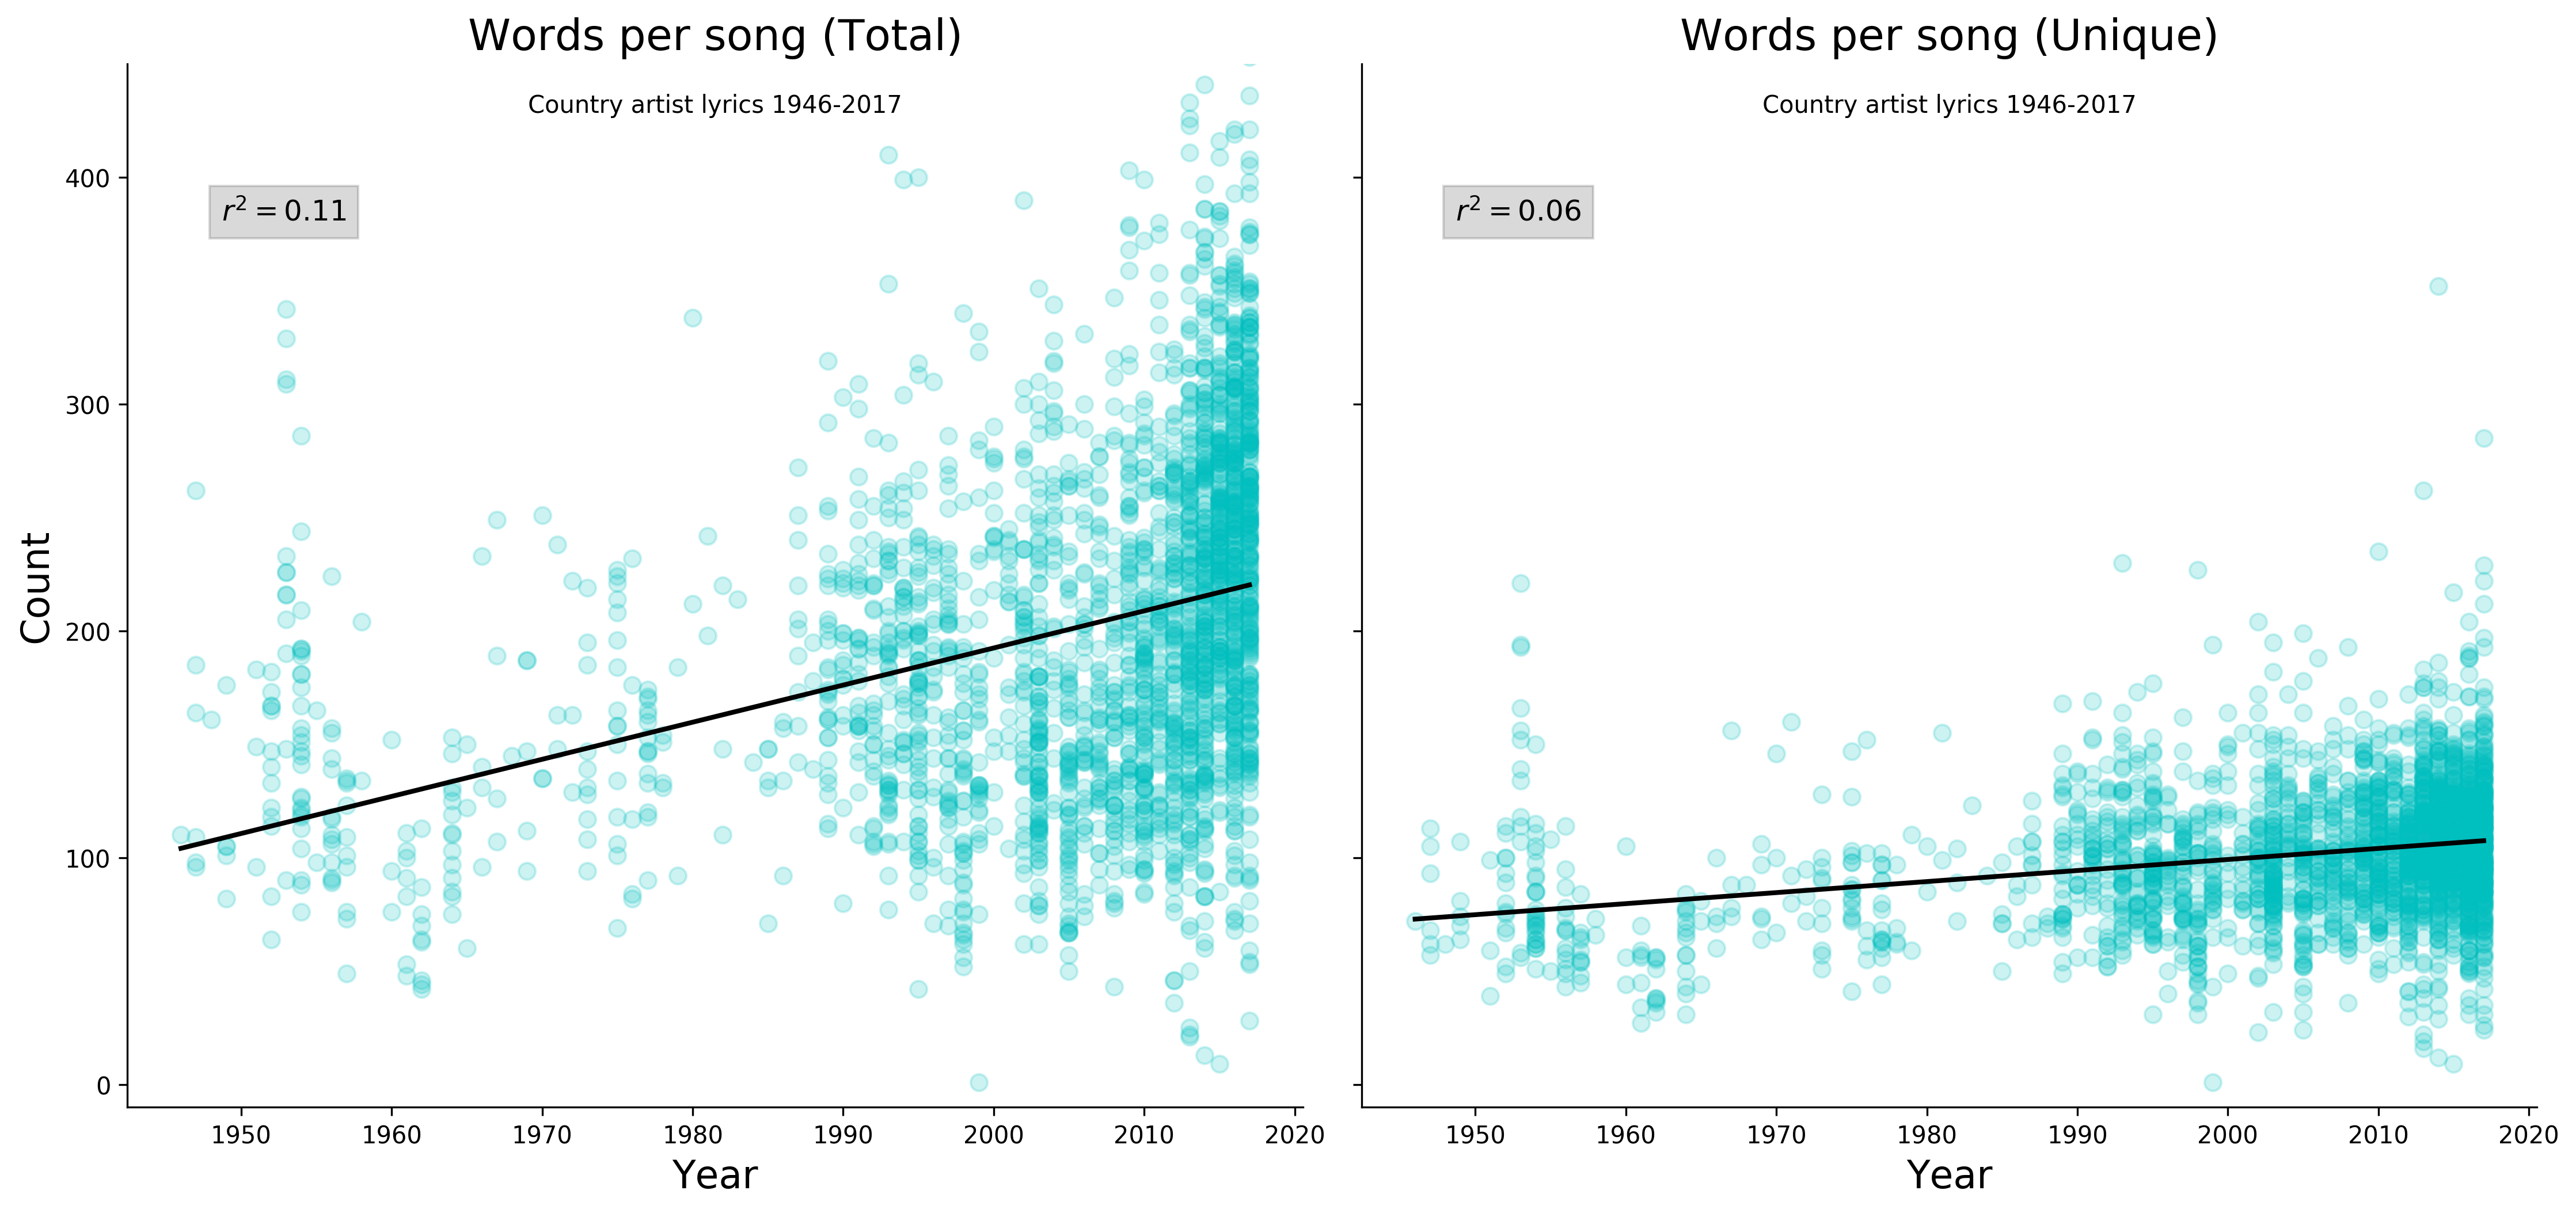 Words per song for rap, rock, and country music [OC] : dataisbeautiful